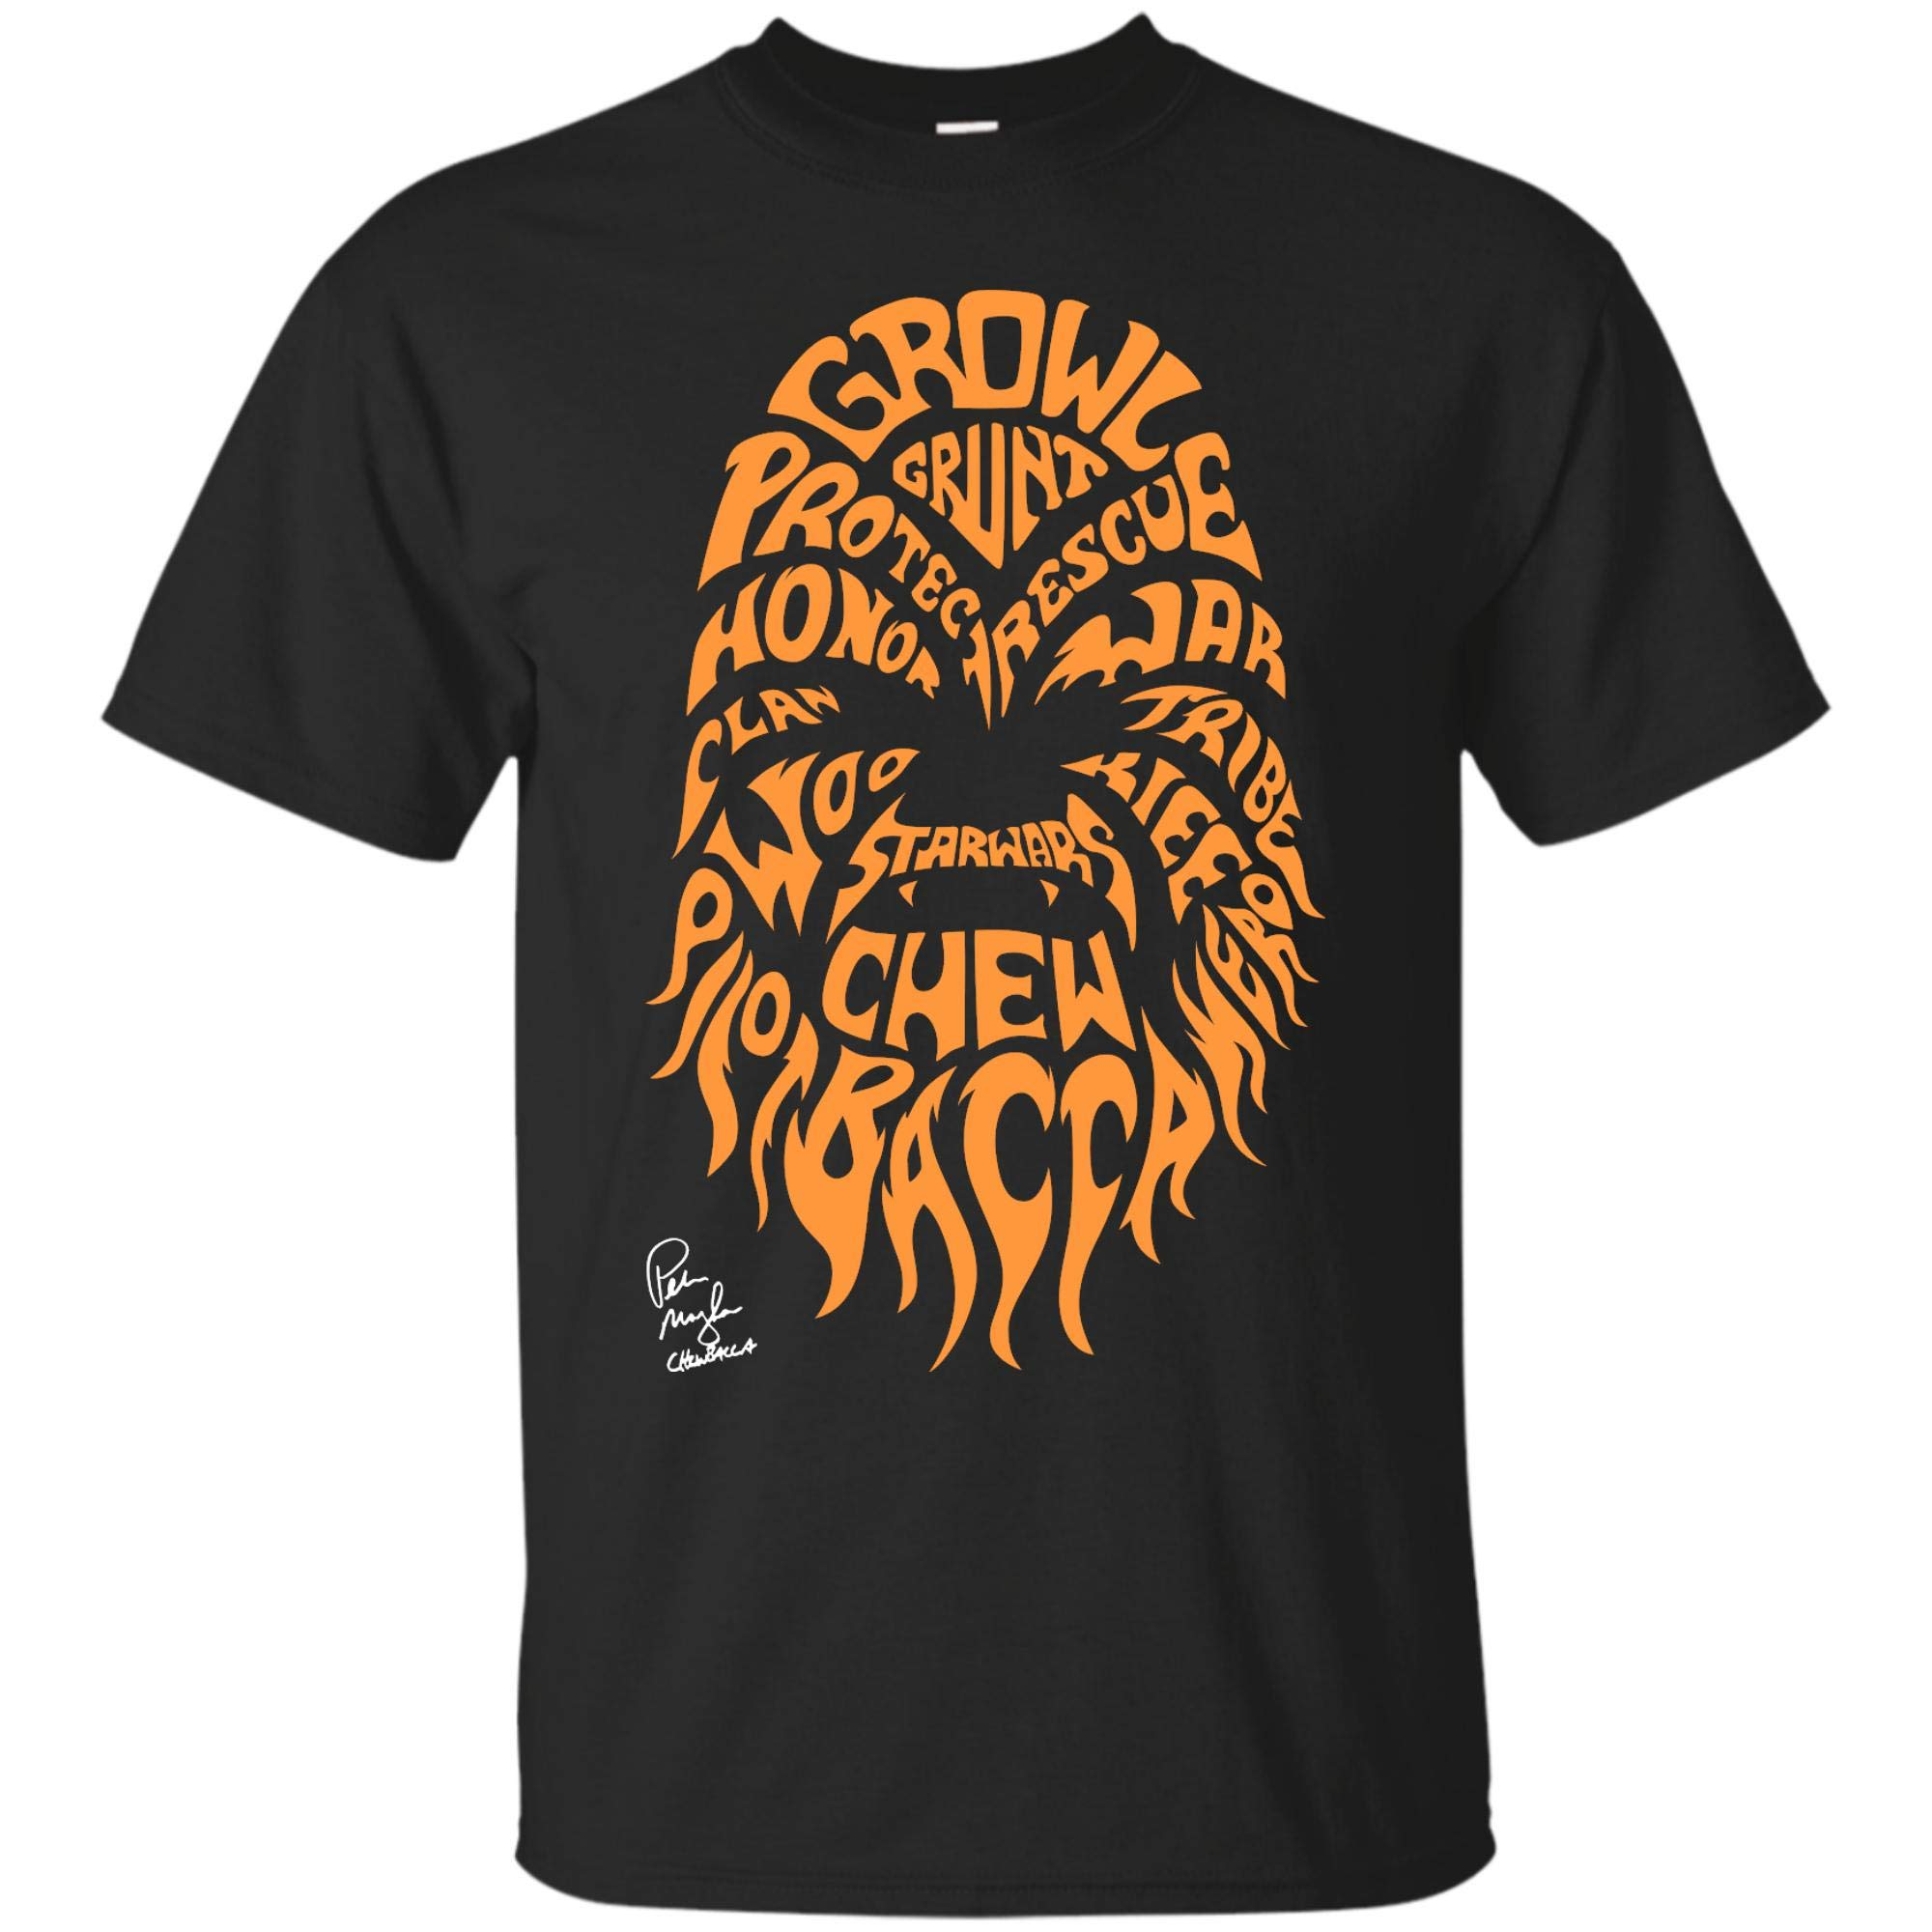 Rip Peter Mayhew 1944 2019 Shirt Chewie Forever T Shirt For And 2653